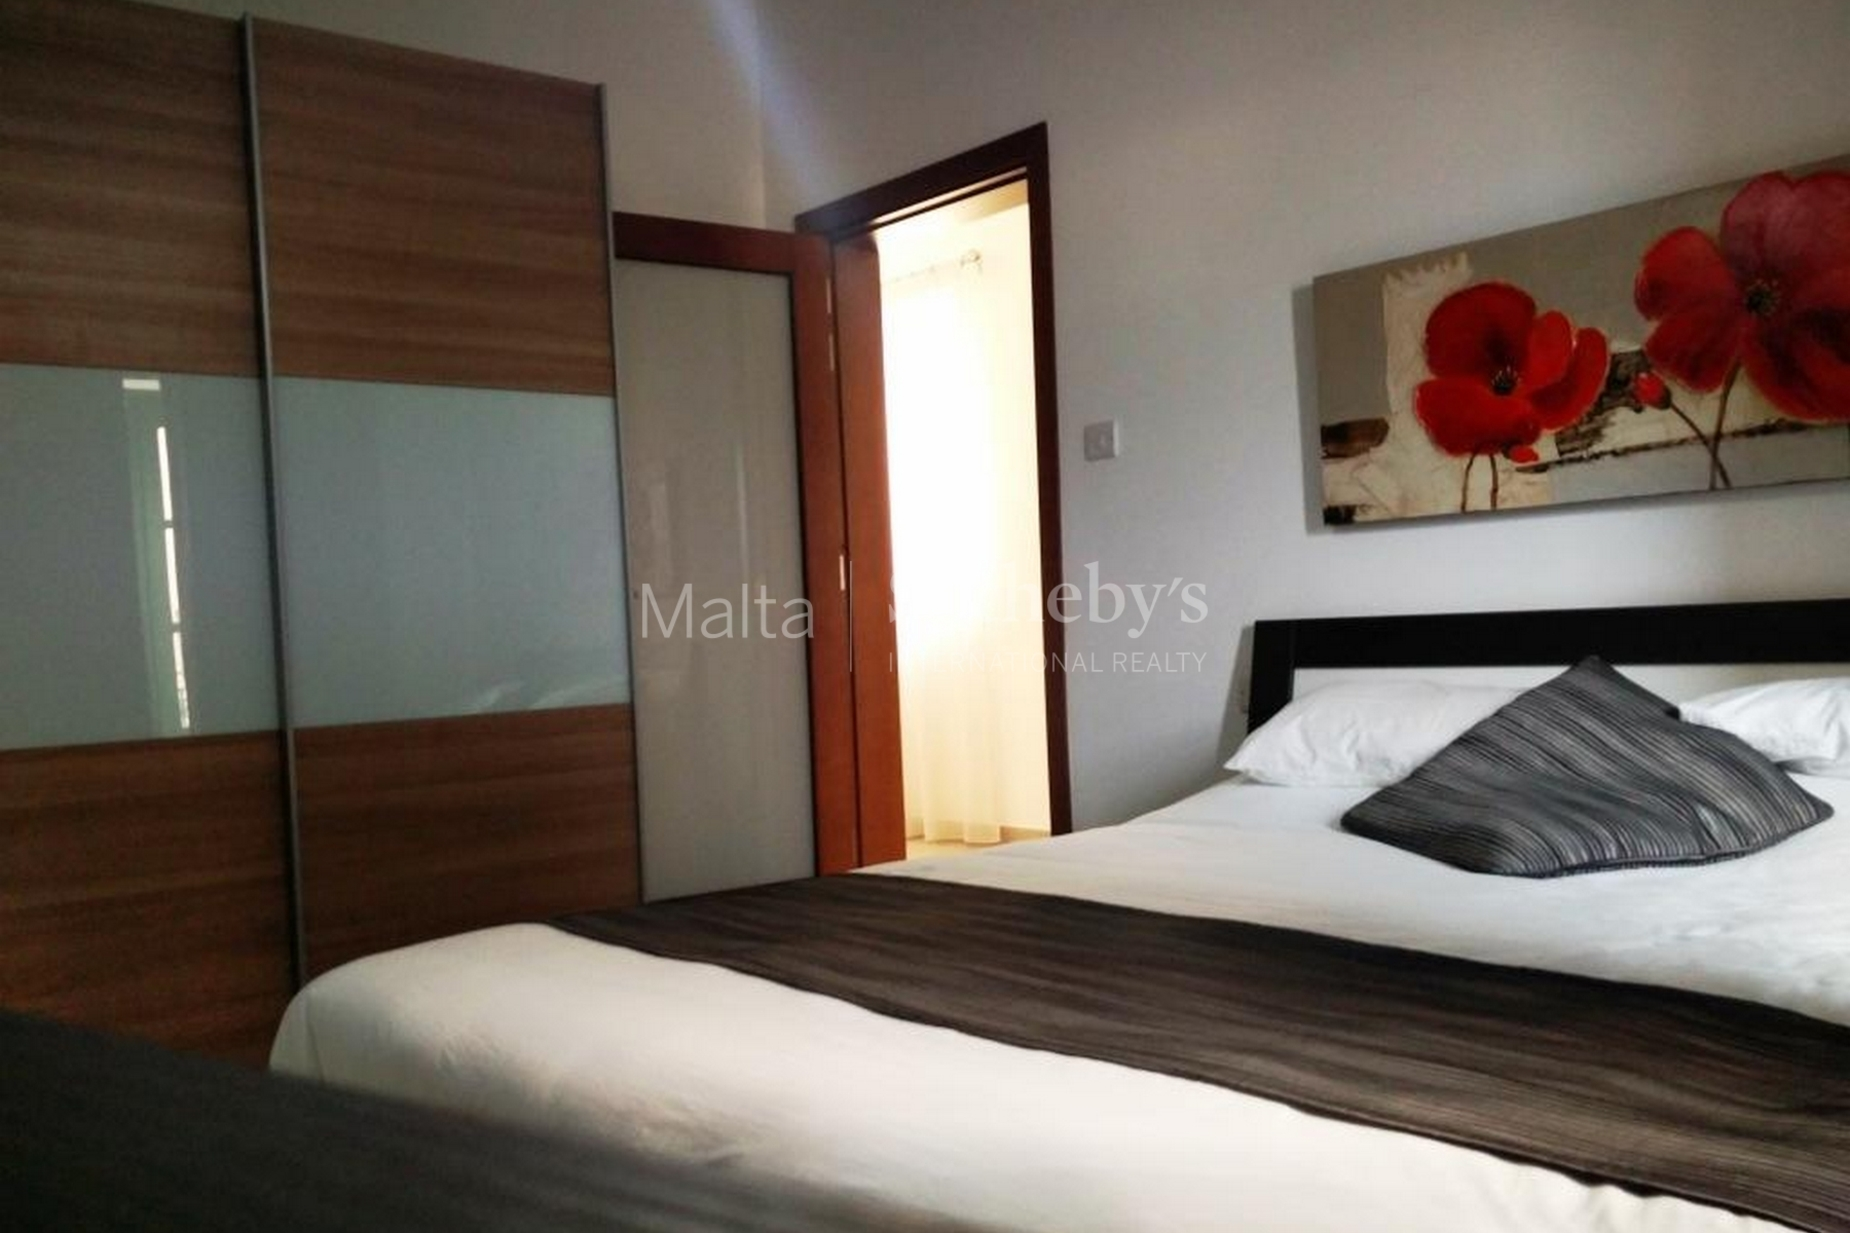 2 bed Apartment For Rent in Floriana, Floriana - thumb 7